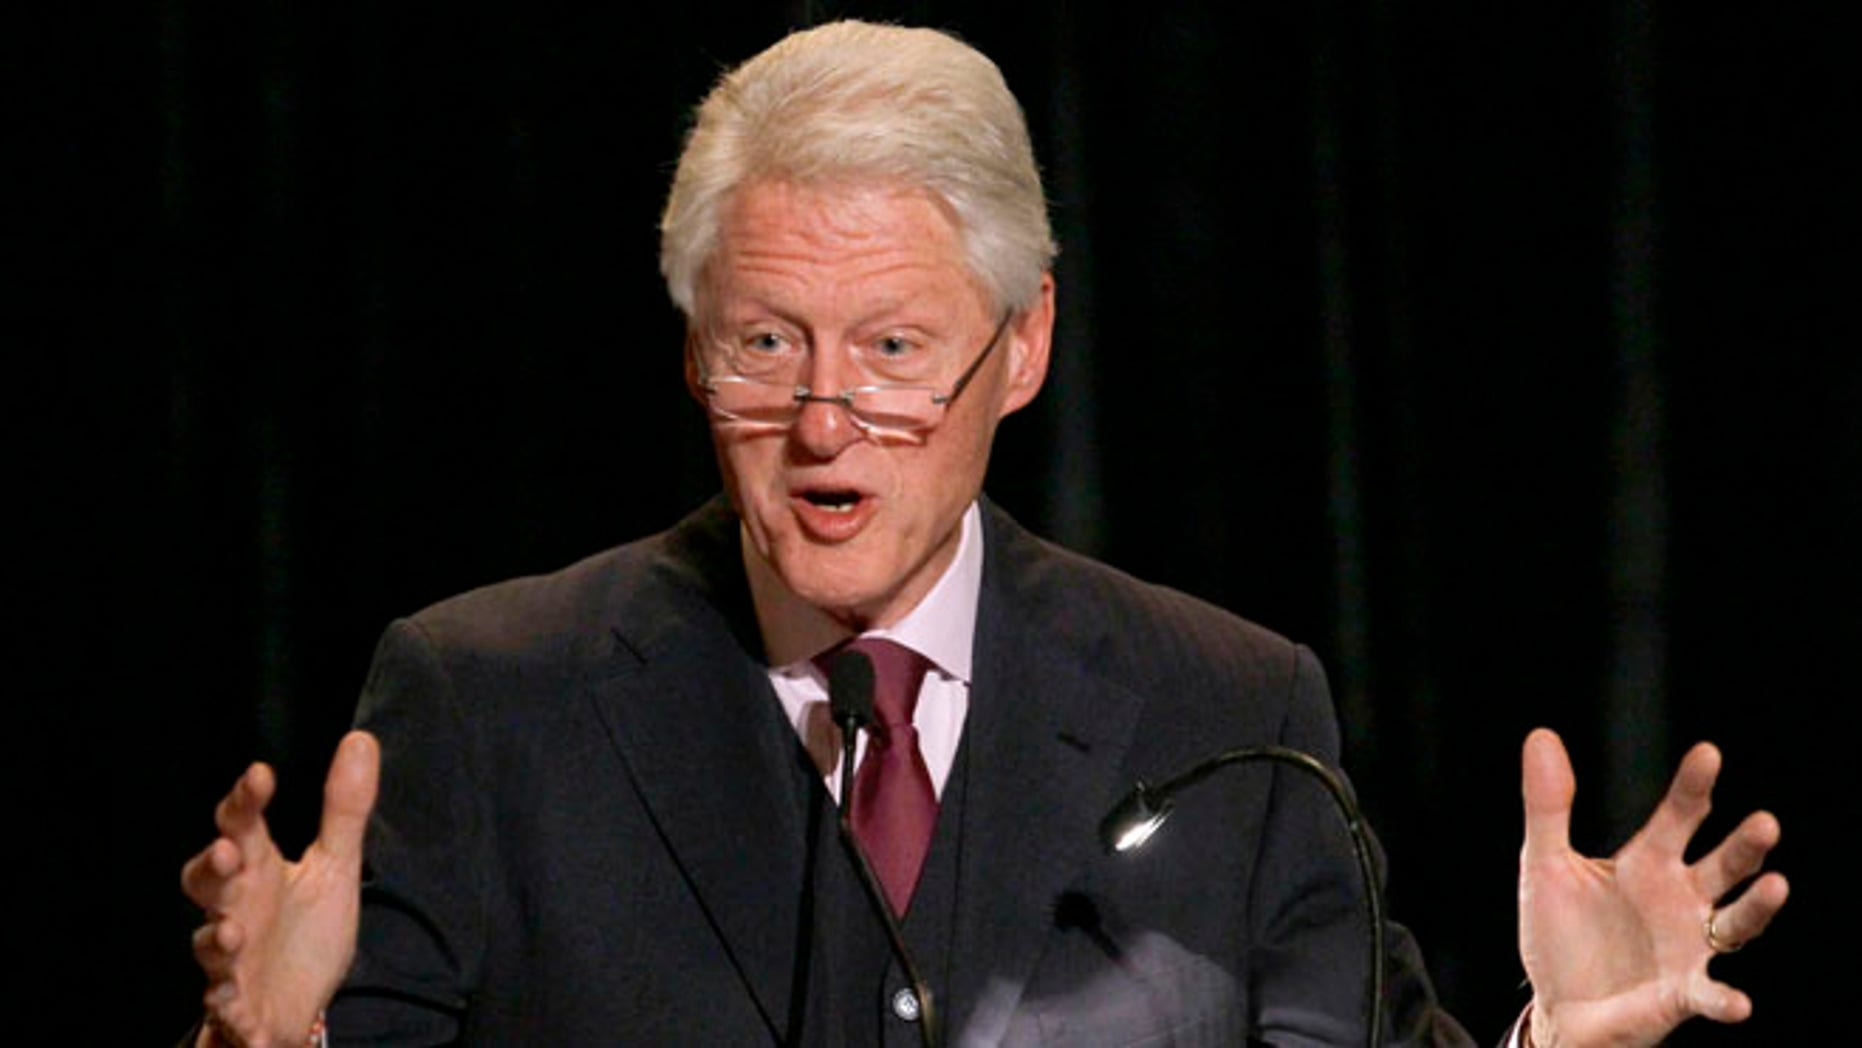 April 23, 2012: Former President Bill Clinton addresses the audience during the opening night dinner of the World Summit of Nobel Peace Laureates at the Field Museum.